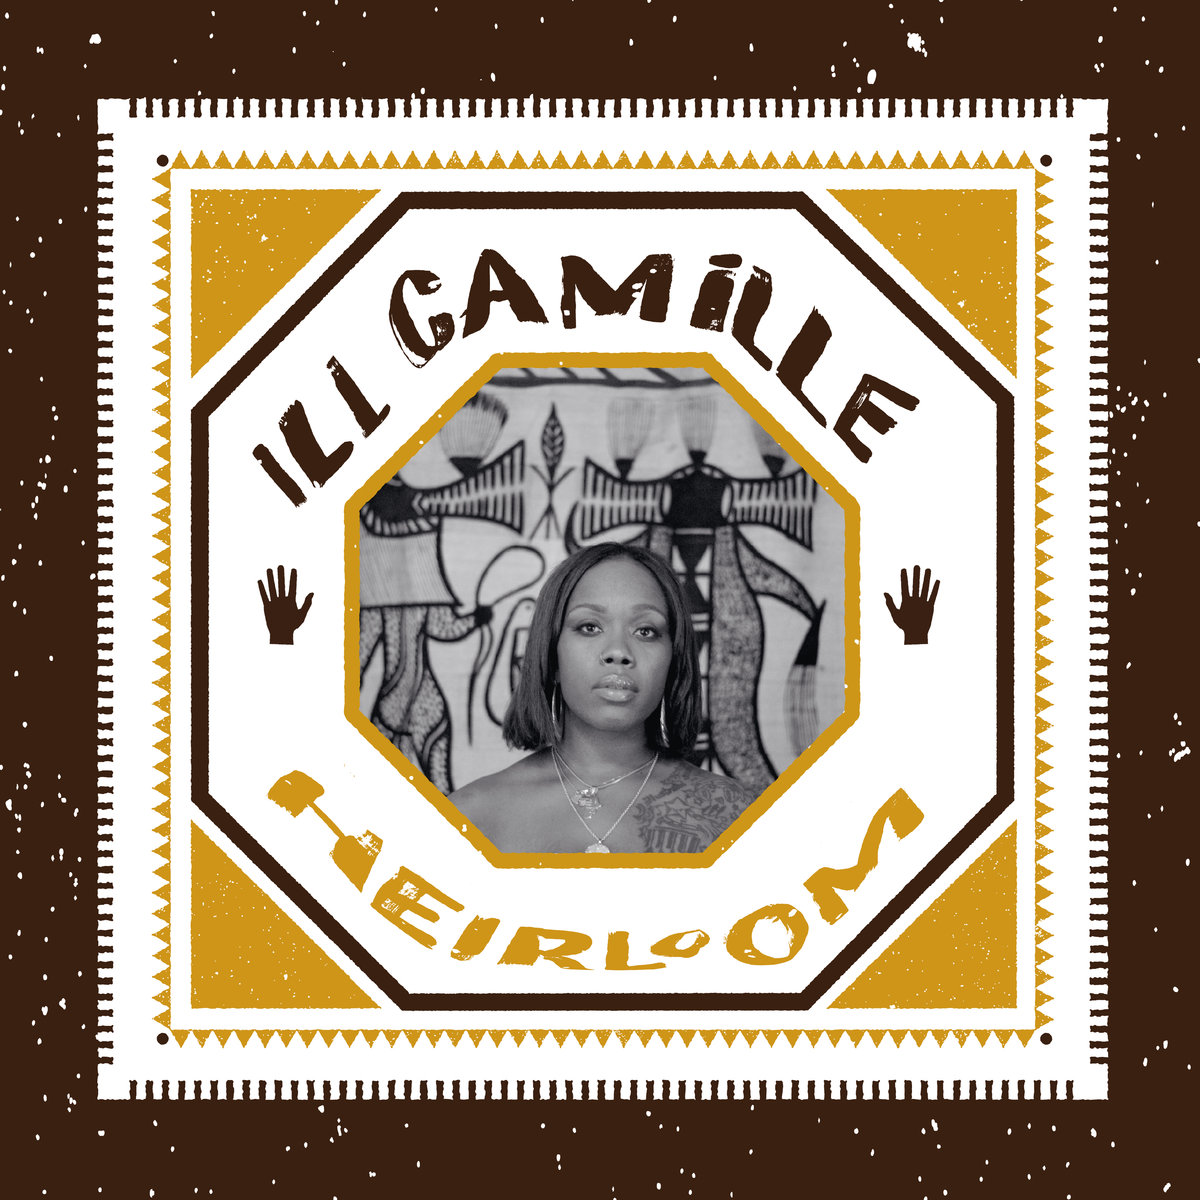 Ill_camille_presenta_heirloom